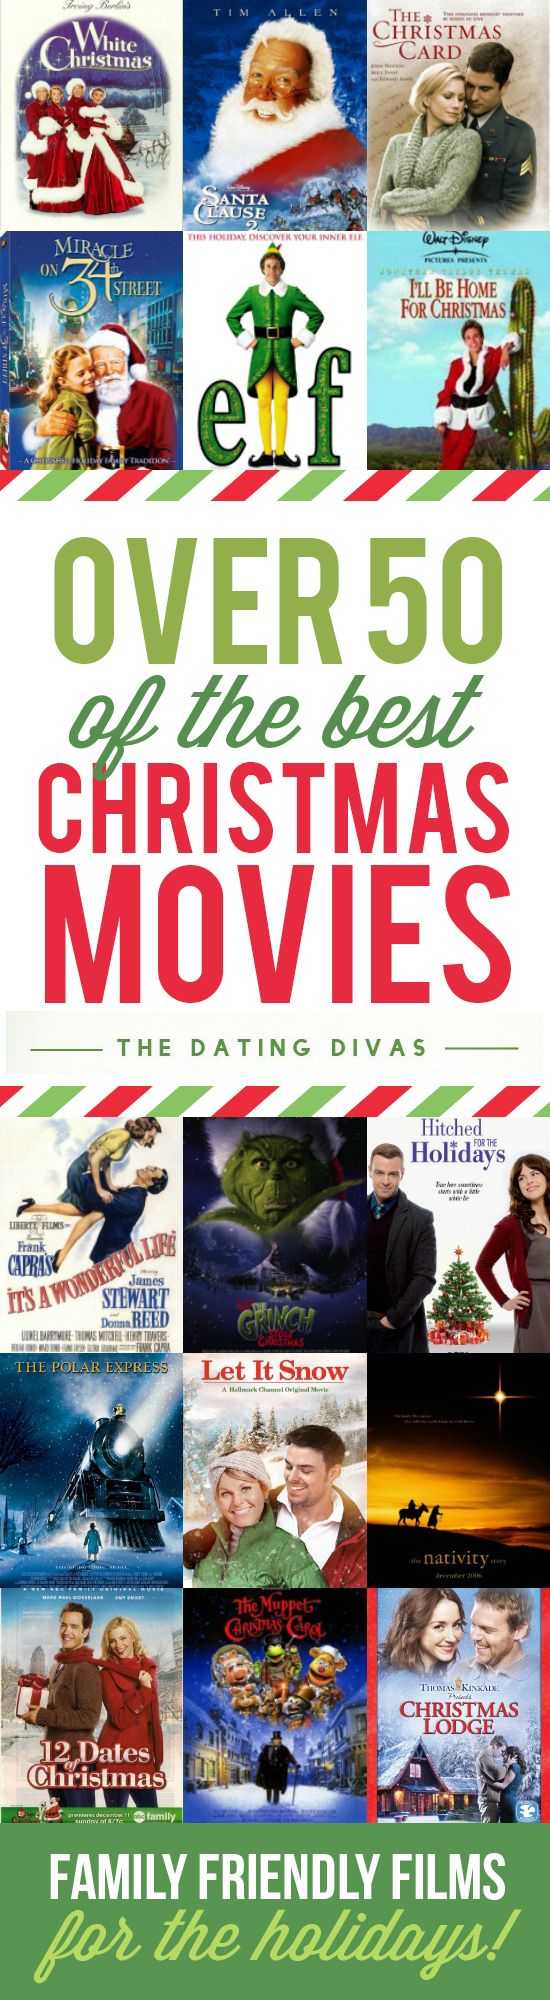 50 of the best Christmas and Holiday Movies all in one place! These are family-friendly films that are perfect for the holiday season. I think it's time for a Christmas Movie Marathon - who's with me? #christmasmovies #holidaymovies